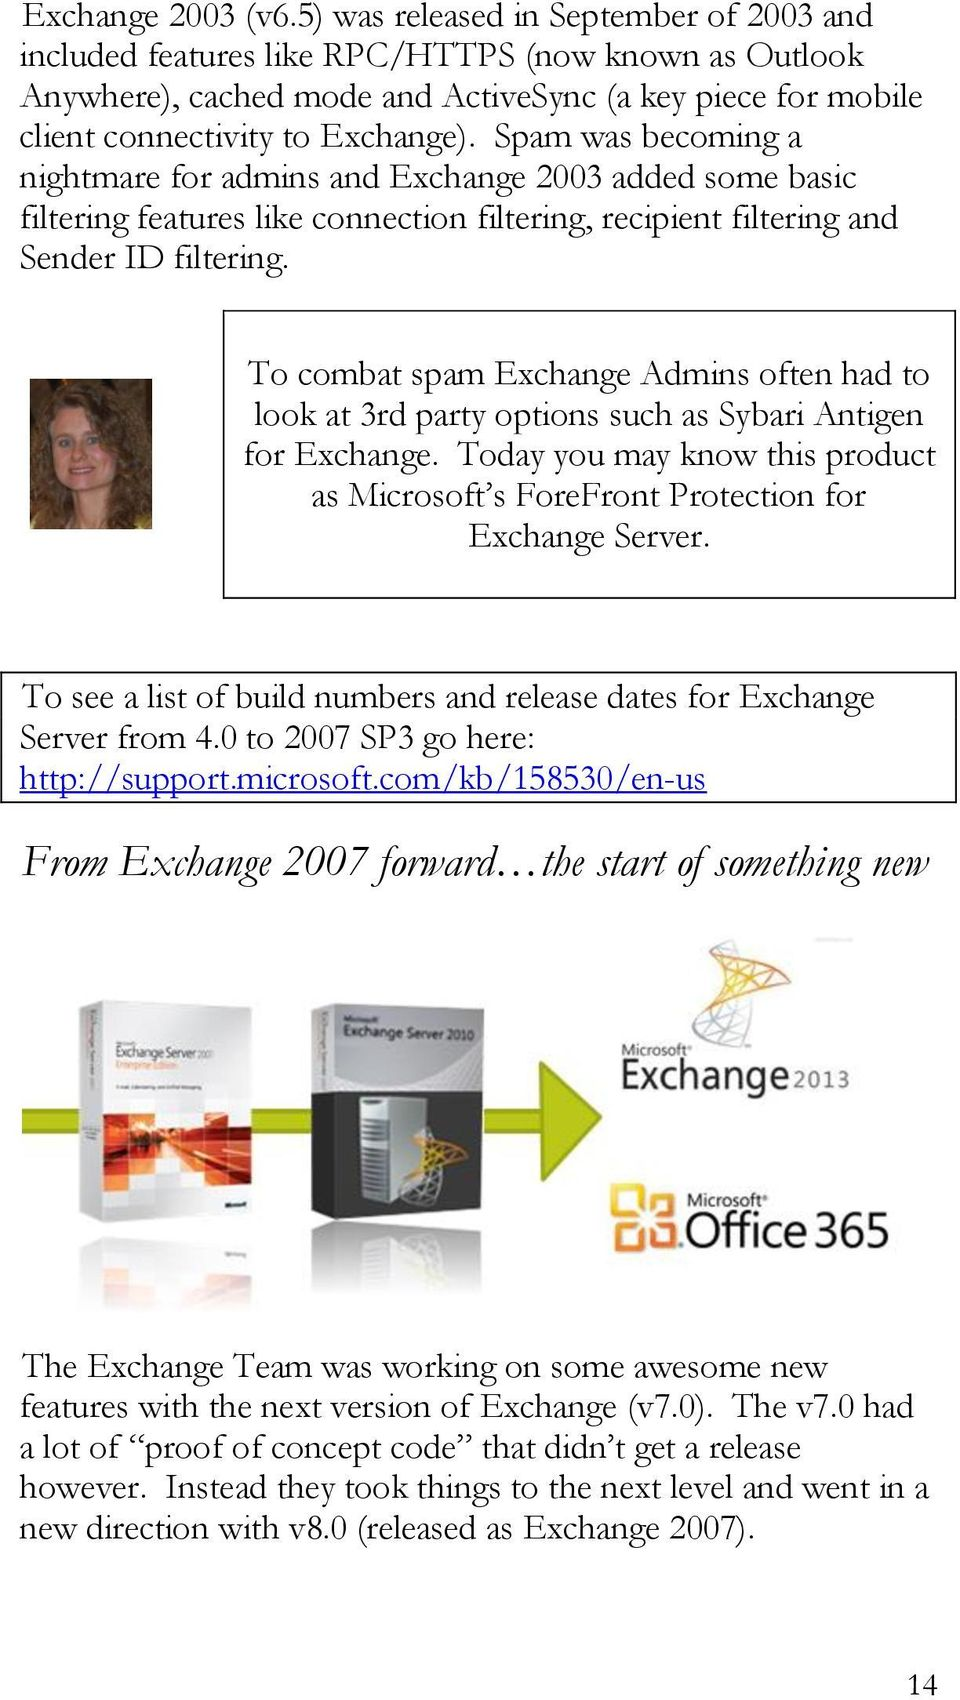 Spam was becoming a nightmare for admins and Exchange 2003 added some basic filtering features like connection filtering, recipient filtering and Sender ID filtering.